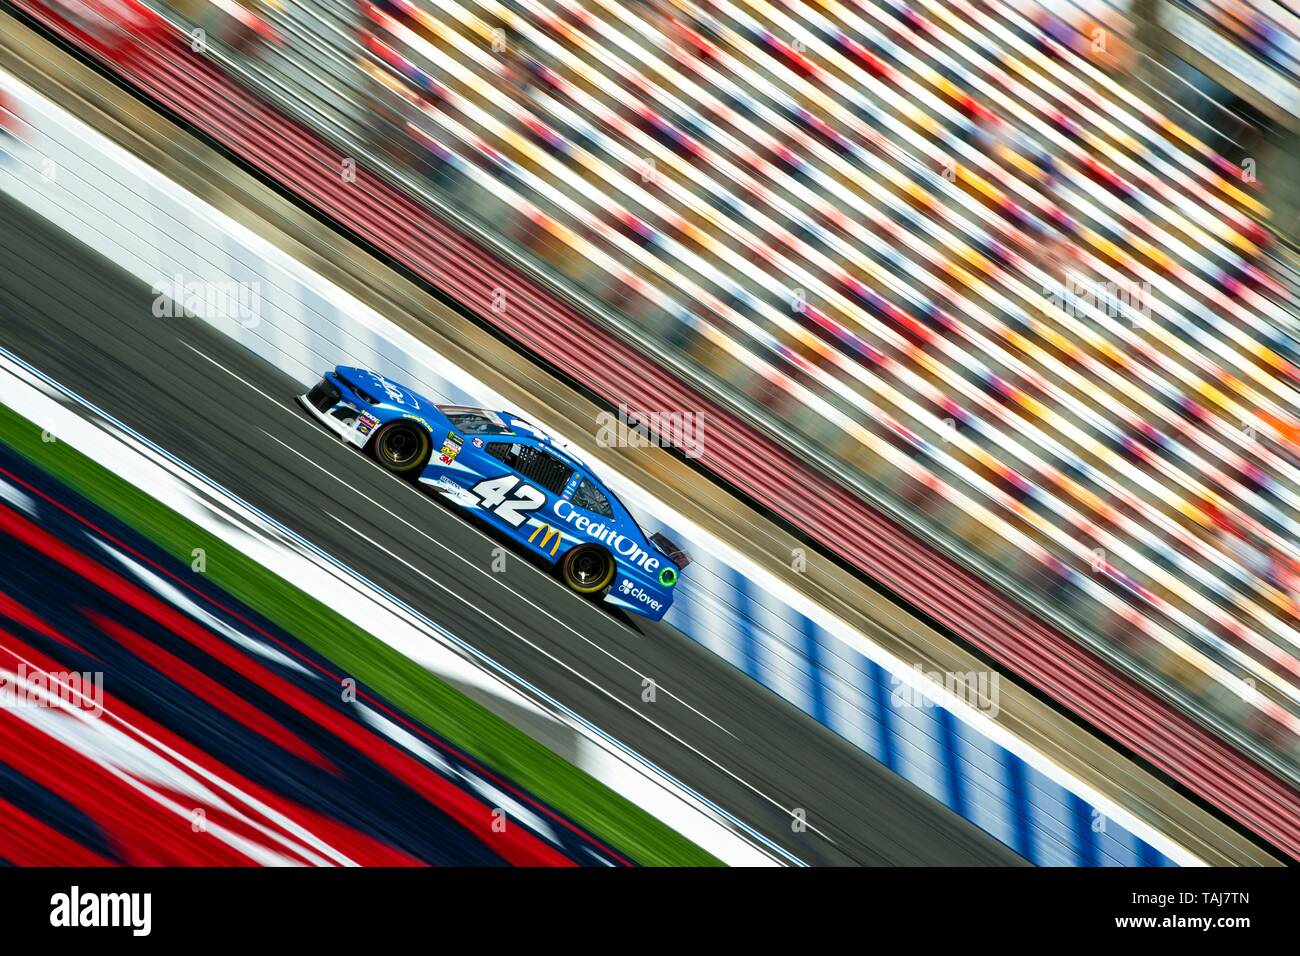 NASCAR driver Kyle Larson warms up for the Coca Cola 600 at Charlotte Motor Speedway May 25, 2019 in Concord, N.C. Larson will be driving in honor of Marine Sgt. Jeanette Lee Winters, who died on active duty, and her name will be on the windshield of his car. Credit: Planetpix/Alamy Live News - Stock Image